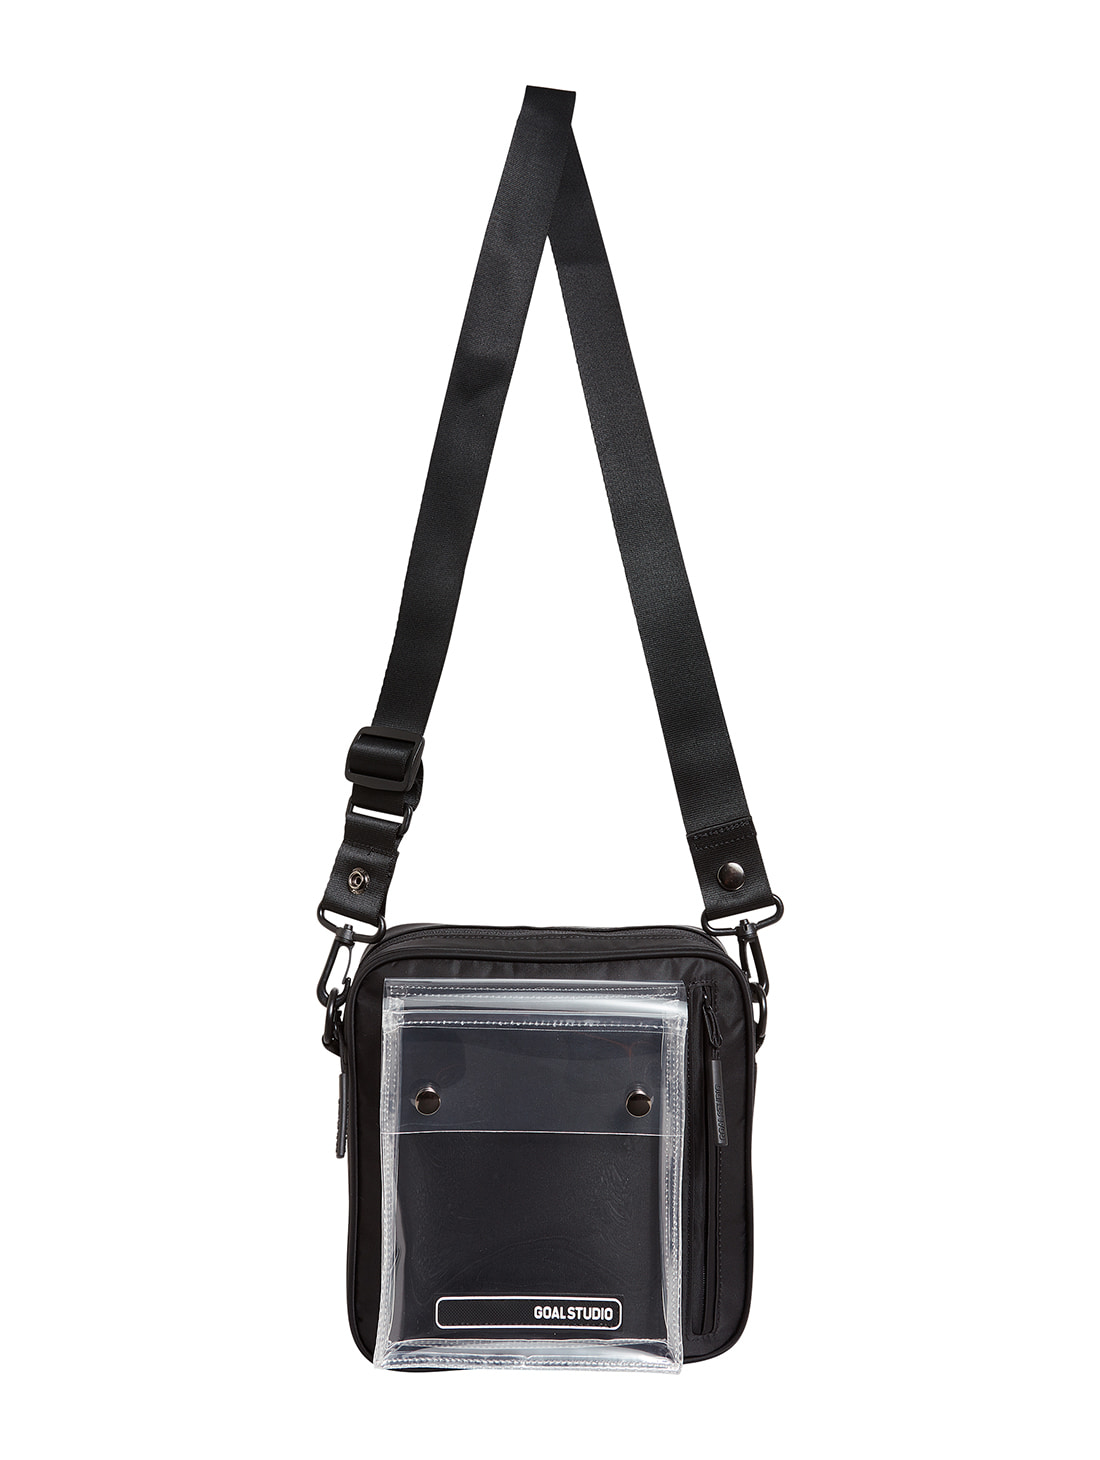 LOGO WAPPEN SMALL BAG - BLACK